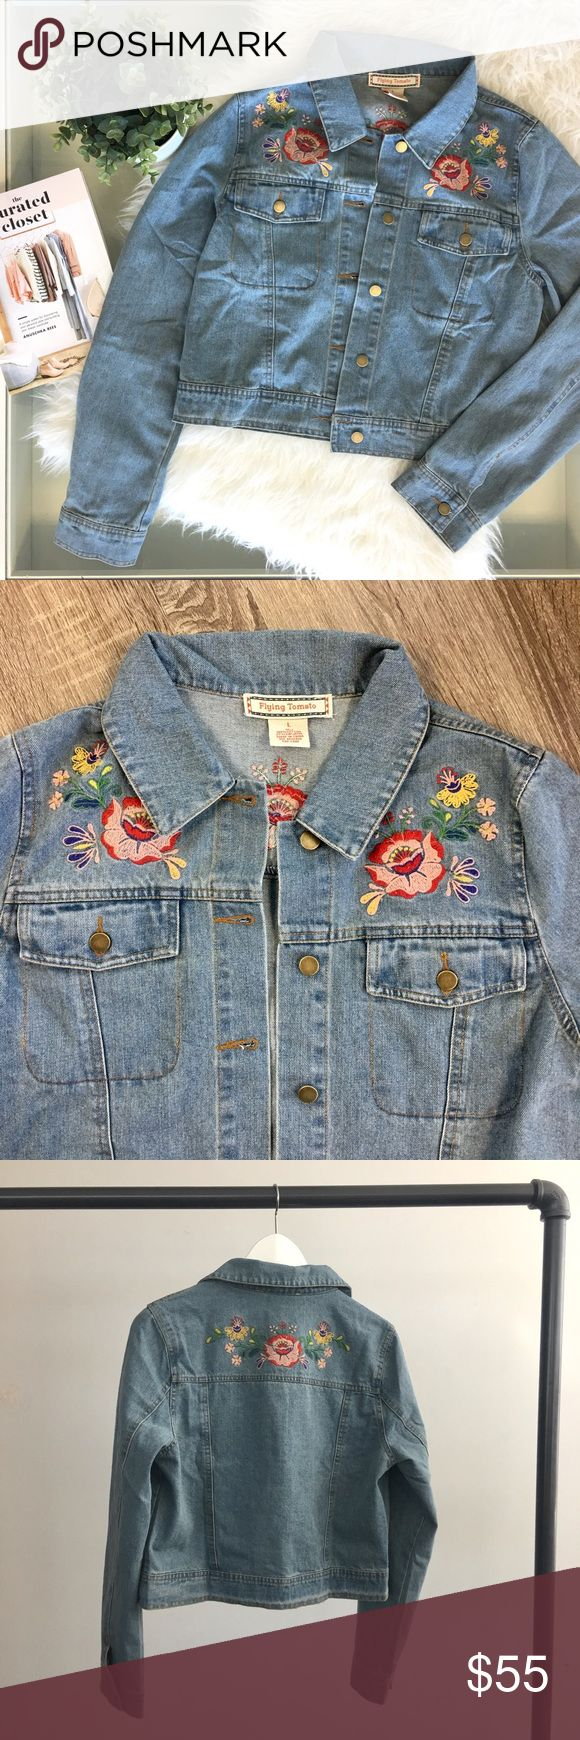 Floral Embroidered Denim Jacket Vintage-inspired Cropped denim jacket with embroidered floral patches. Medium wash. Brand new. Please carefully review each photo before purchase as they are the best descriptors of the item. My price is firm. No trades. First come, first served. Thank you! :) RGL Collection Jackets & Coats Jean Jackets